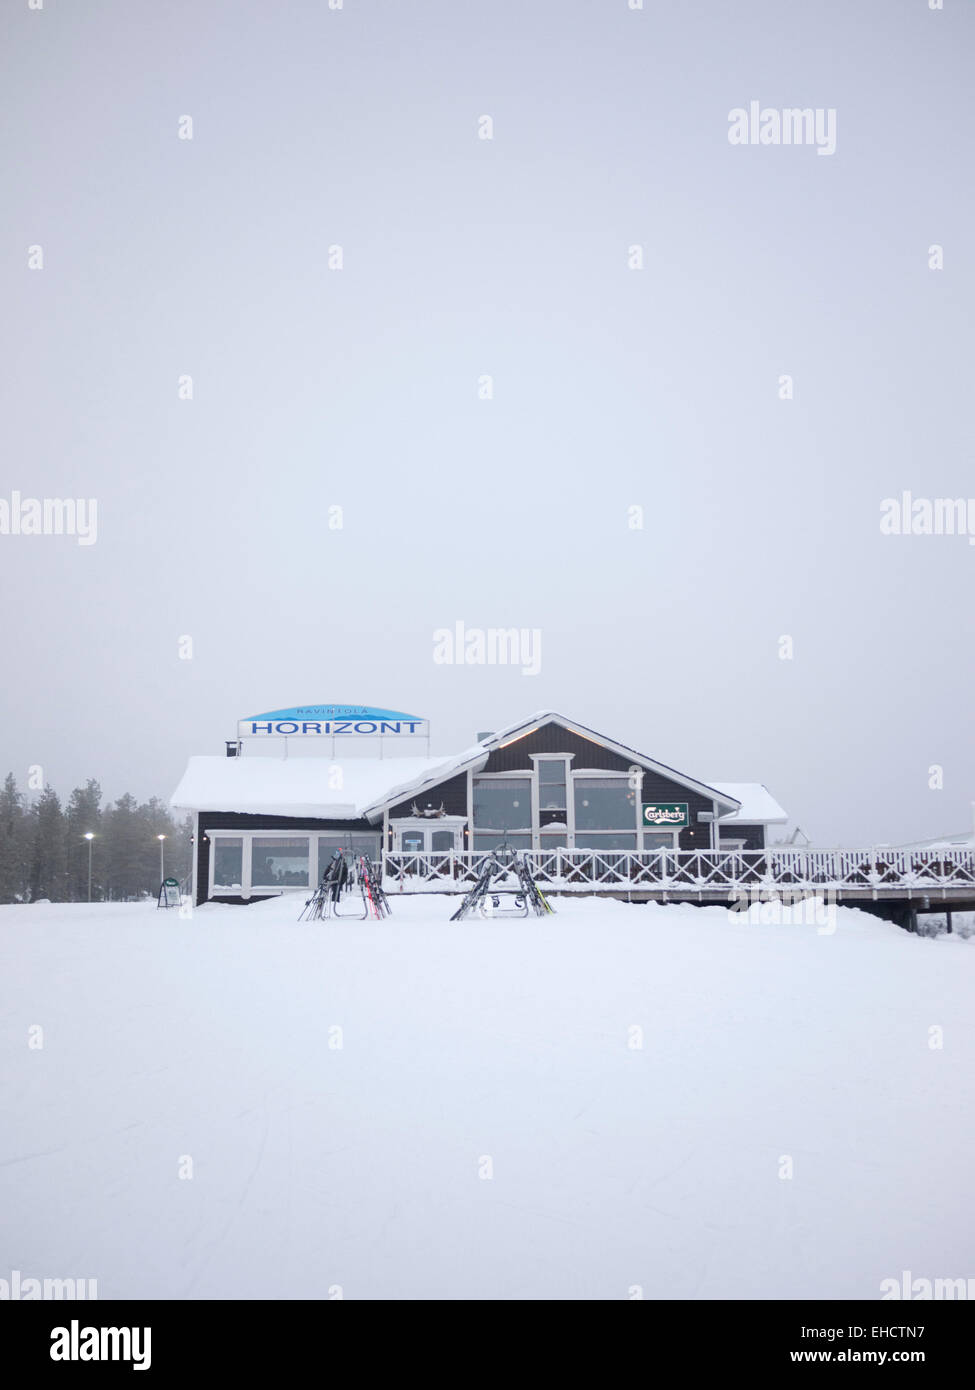 The Horizont mountain cafe and restaurant at the ski resort of Levi Lapland Finland - Stock Image